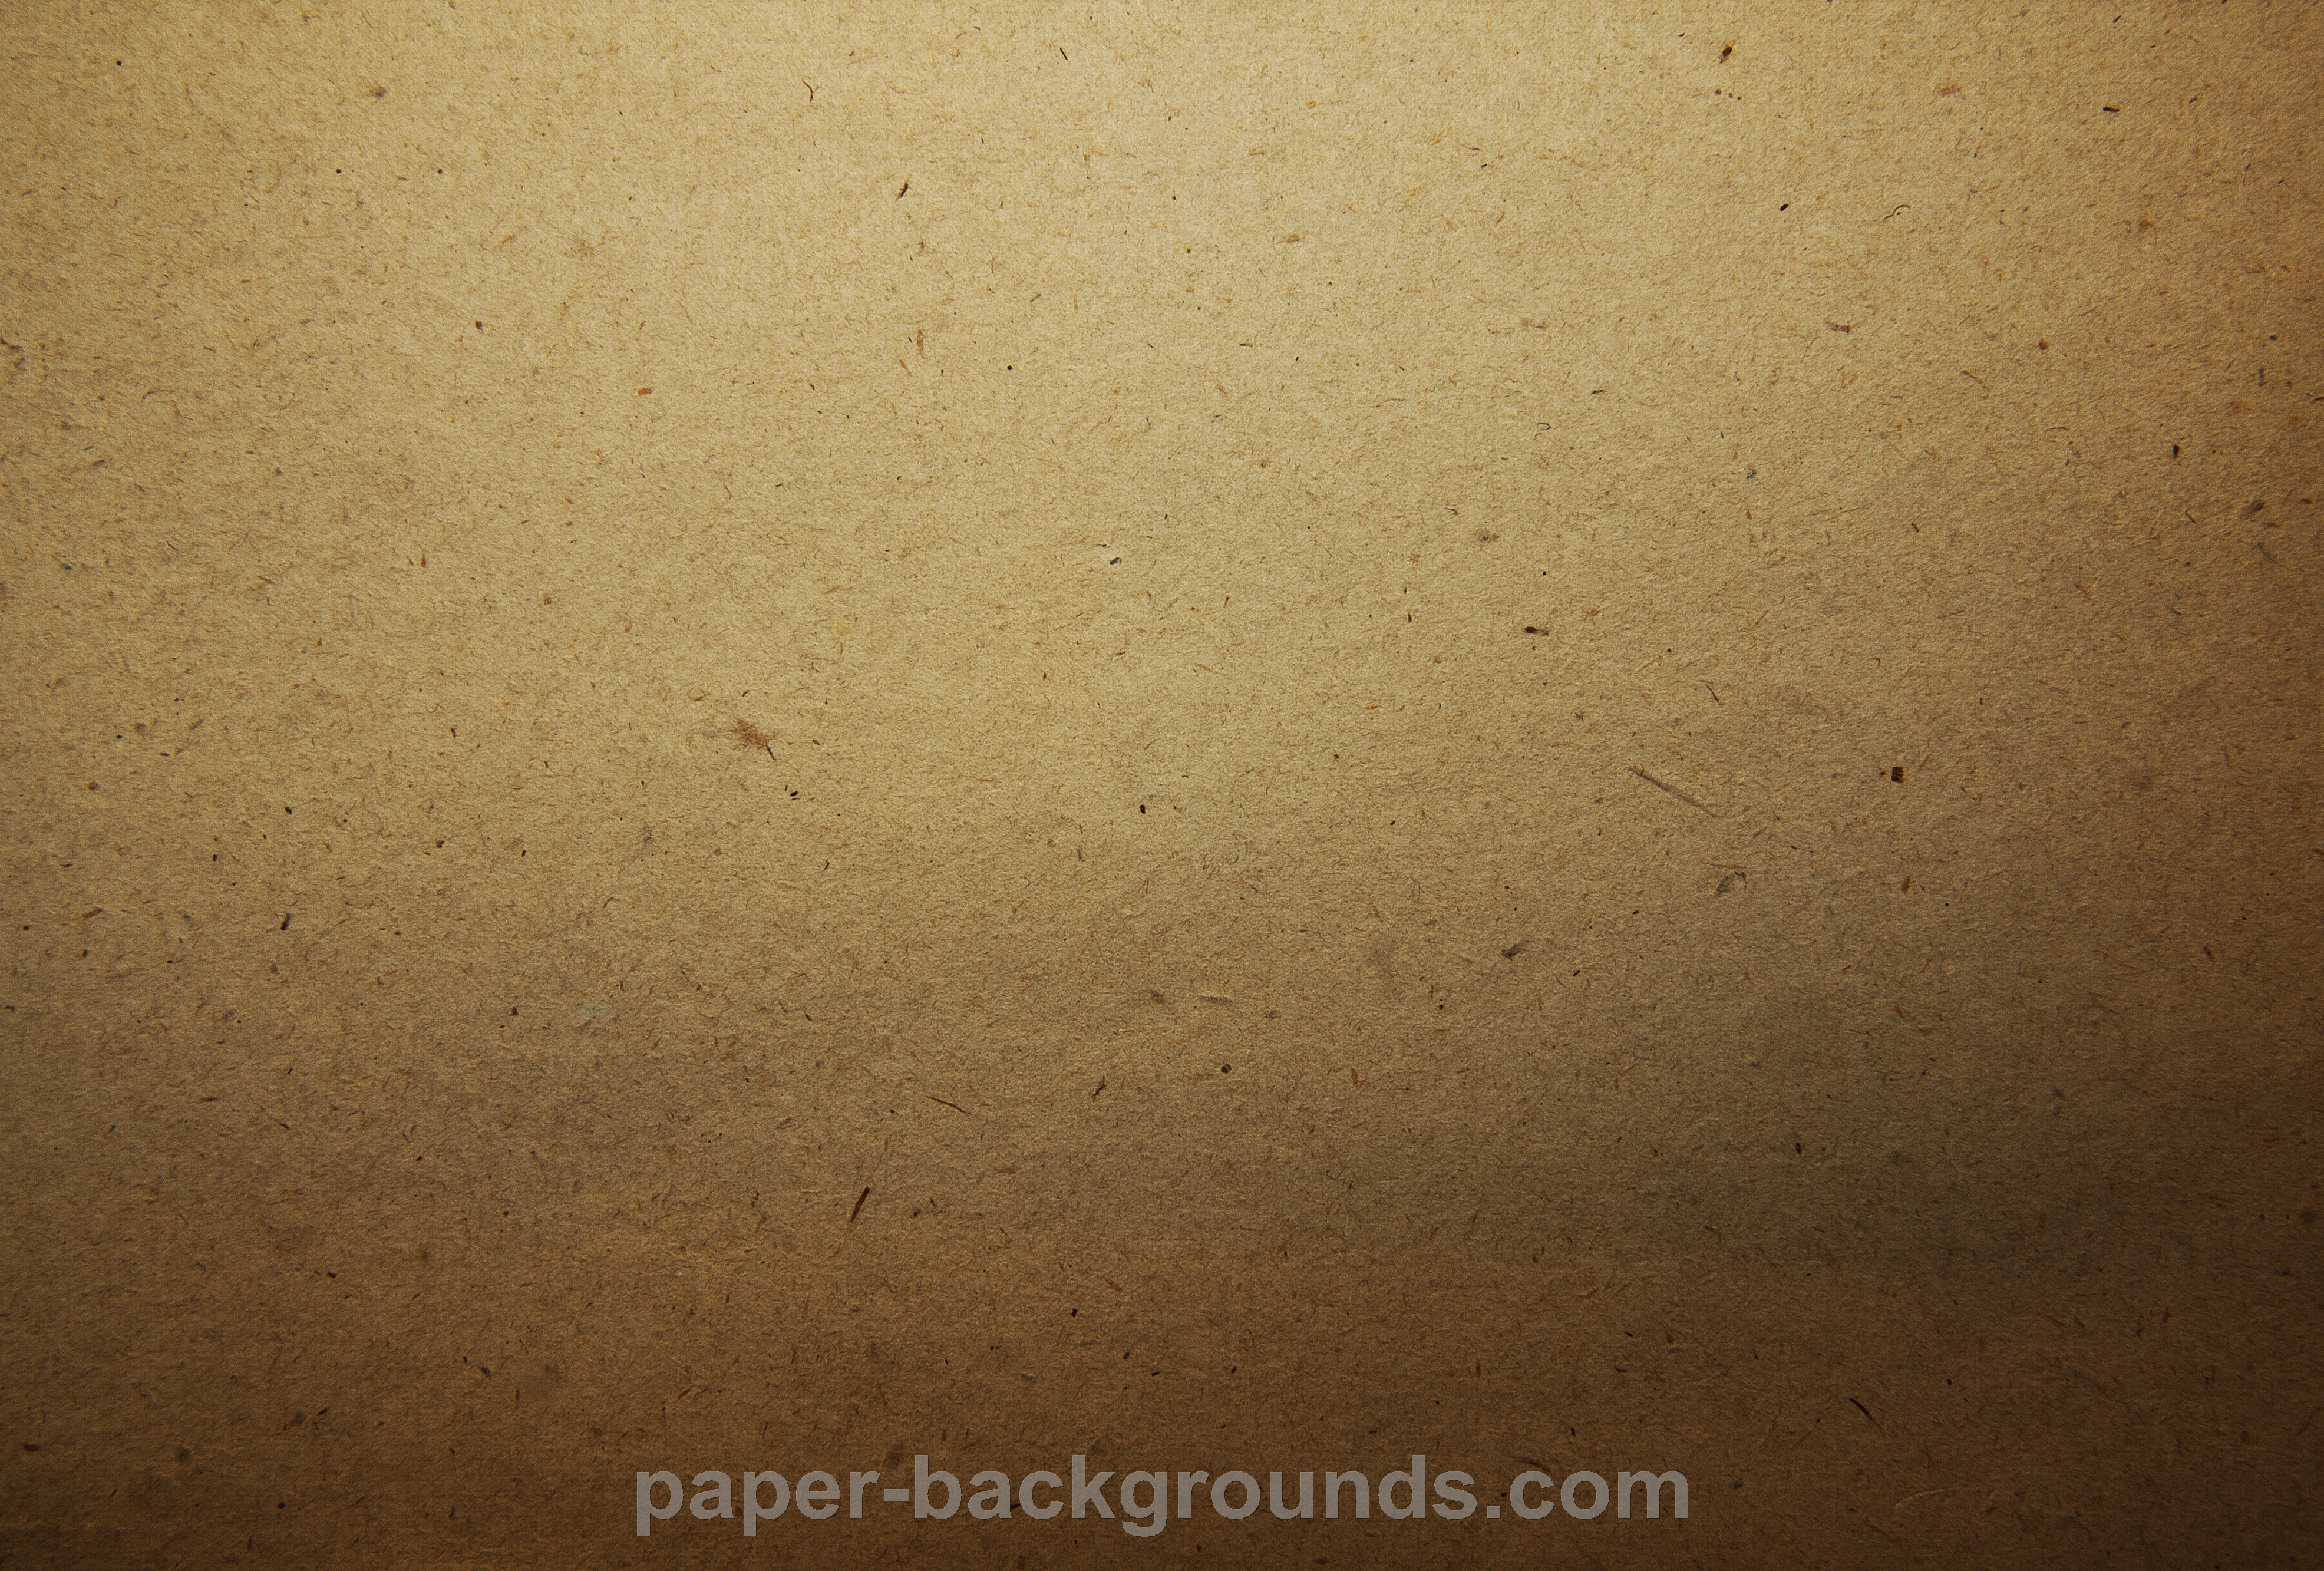 Paper Backgrounds   old-brown-paper-vintage-background-texture